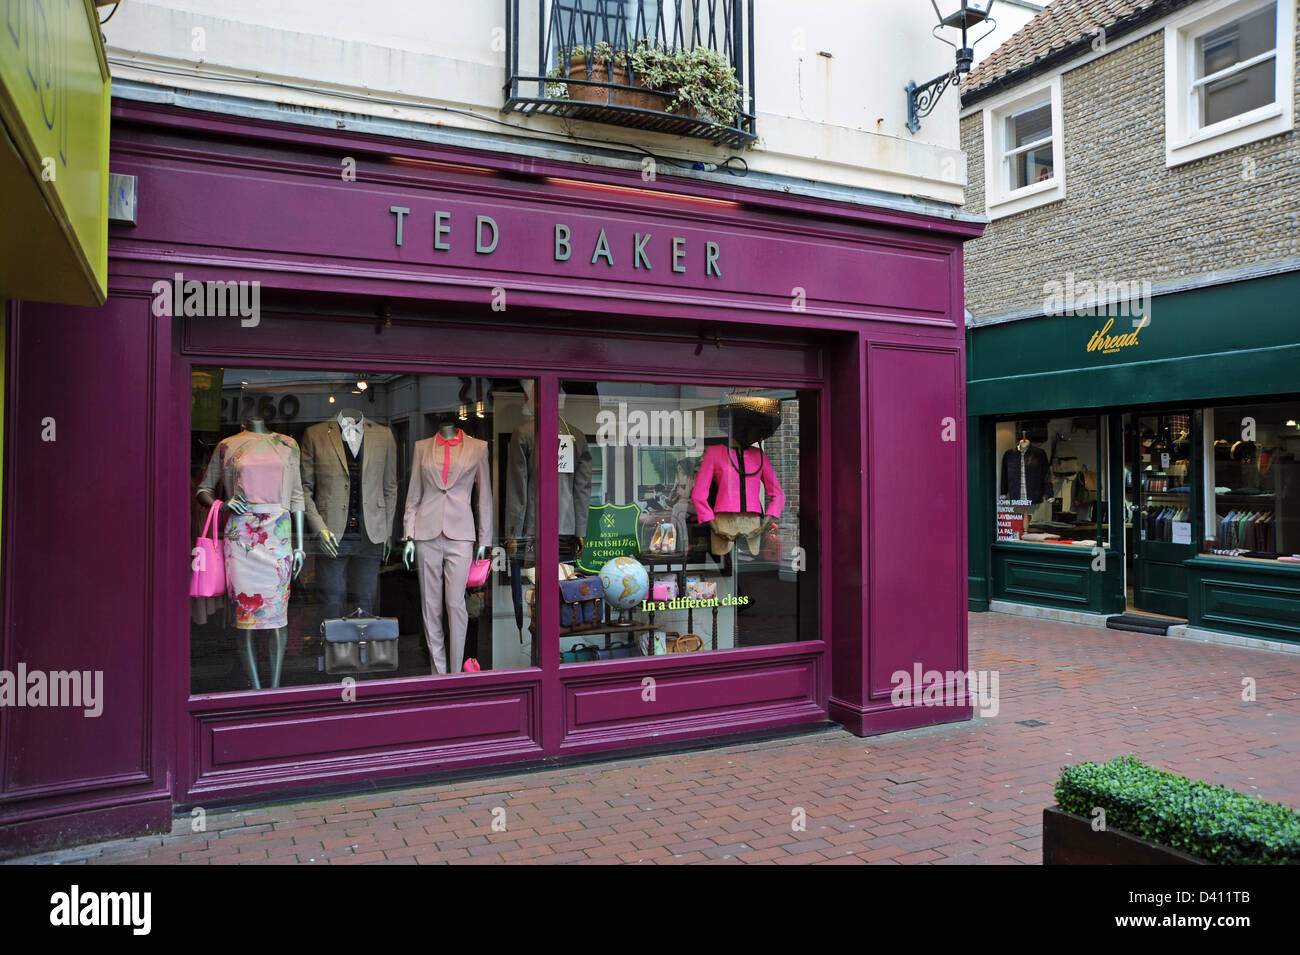 8e02a6fbe18f9a The Ted Baker fashion store Dukes Lane in Brighton s Lanes district - Stock  Image